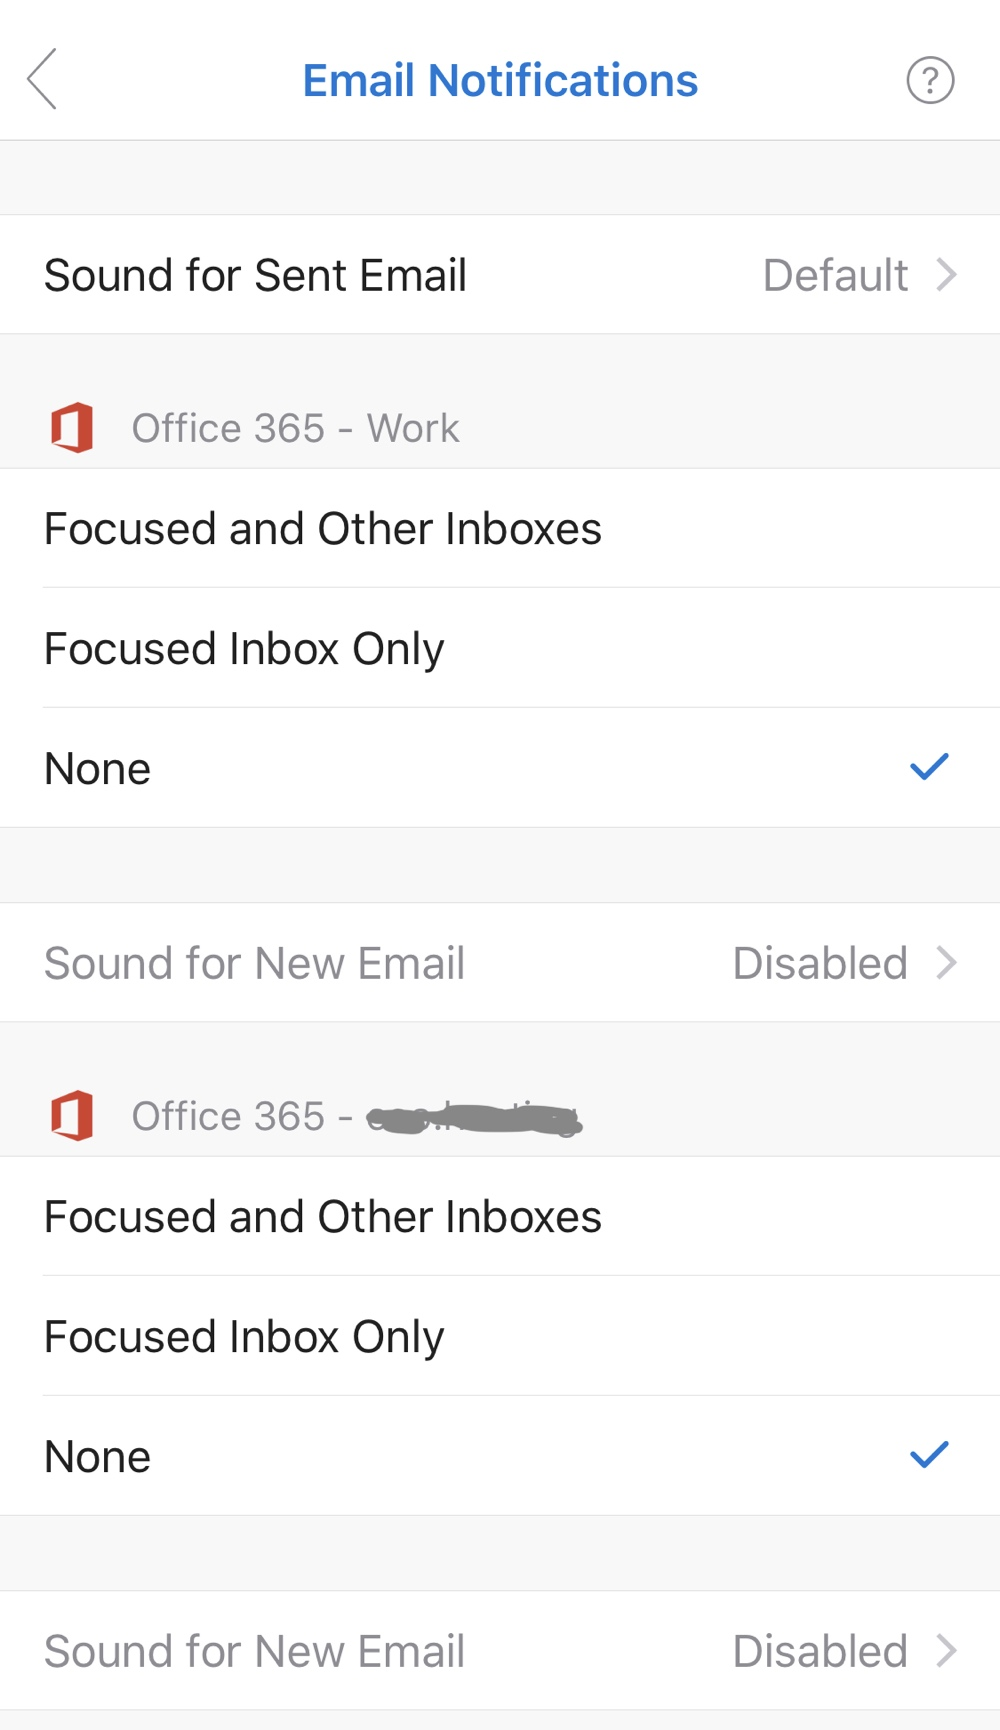 Disabling Push Email in Outlook on iOS